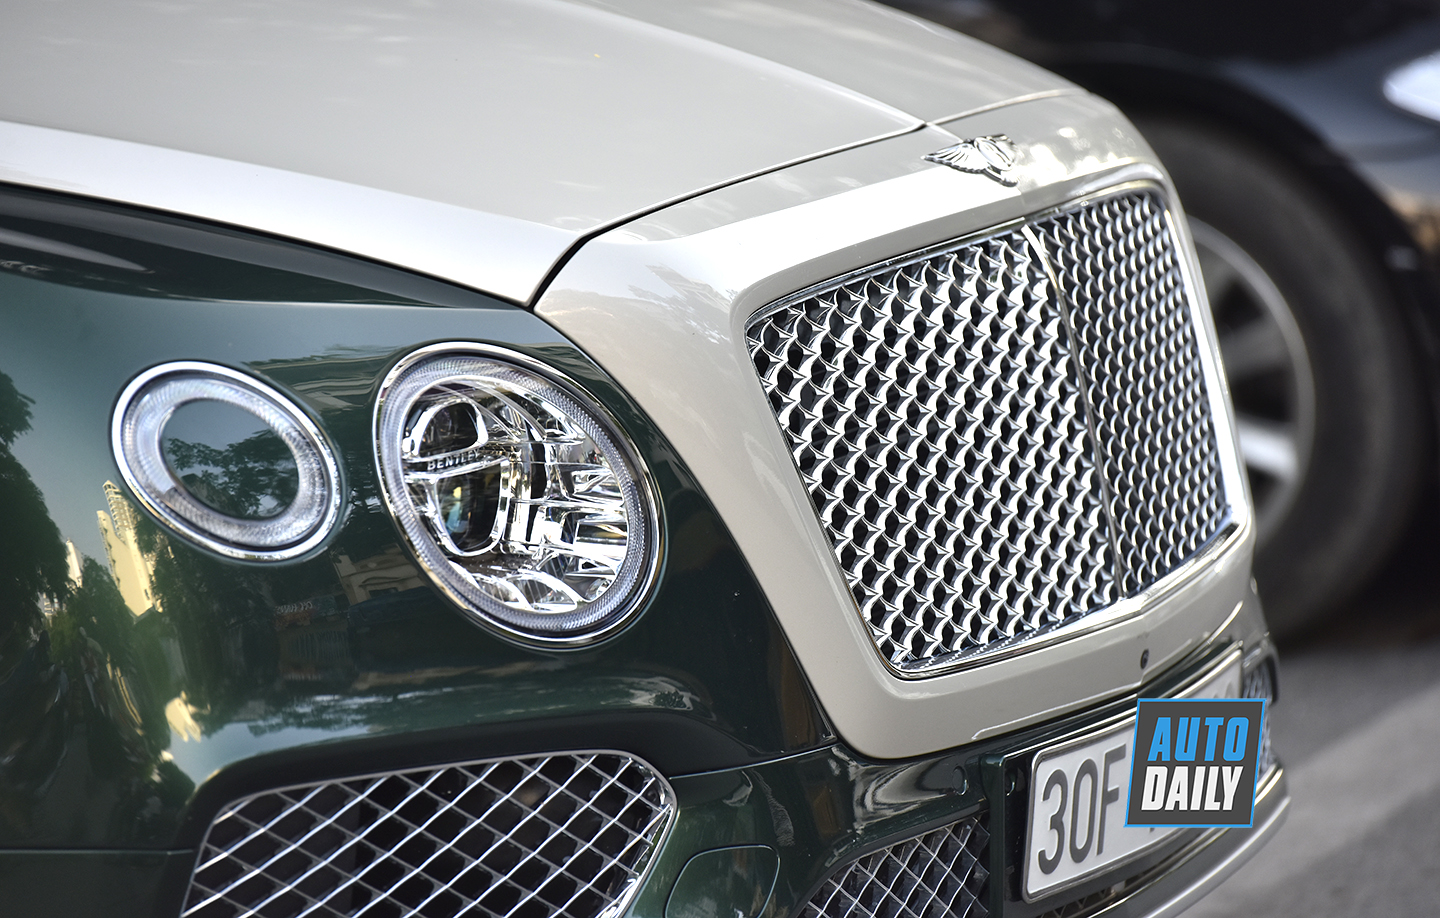 bentley-bentayga-autodaily-dsc8253-copy.jpg